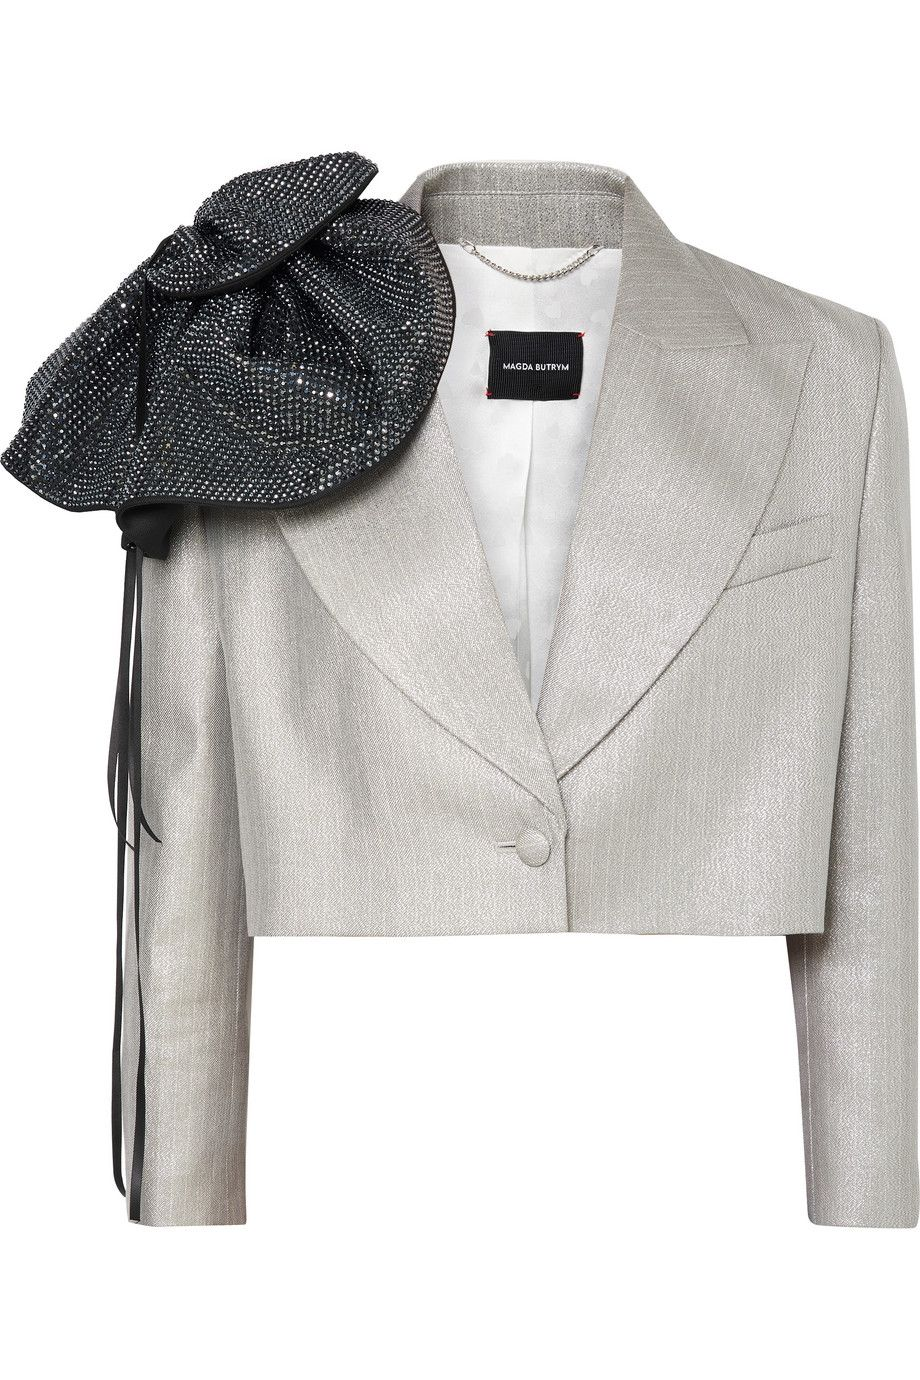 magda-butrym-cropped-crystal-embellished-metallic-wool-blend-blazer